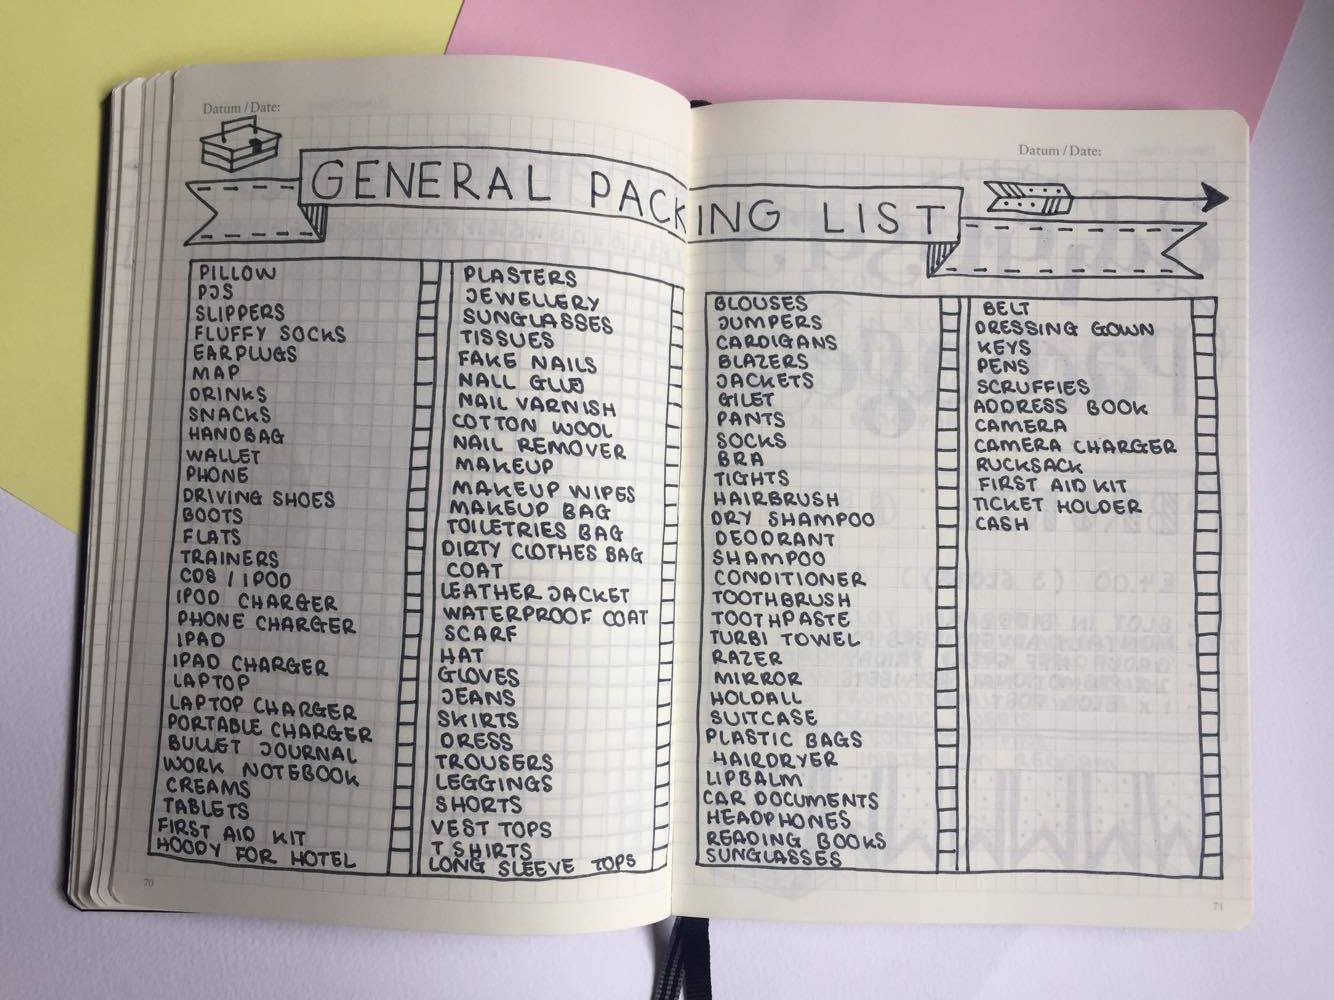 General Packing List.